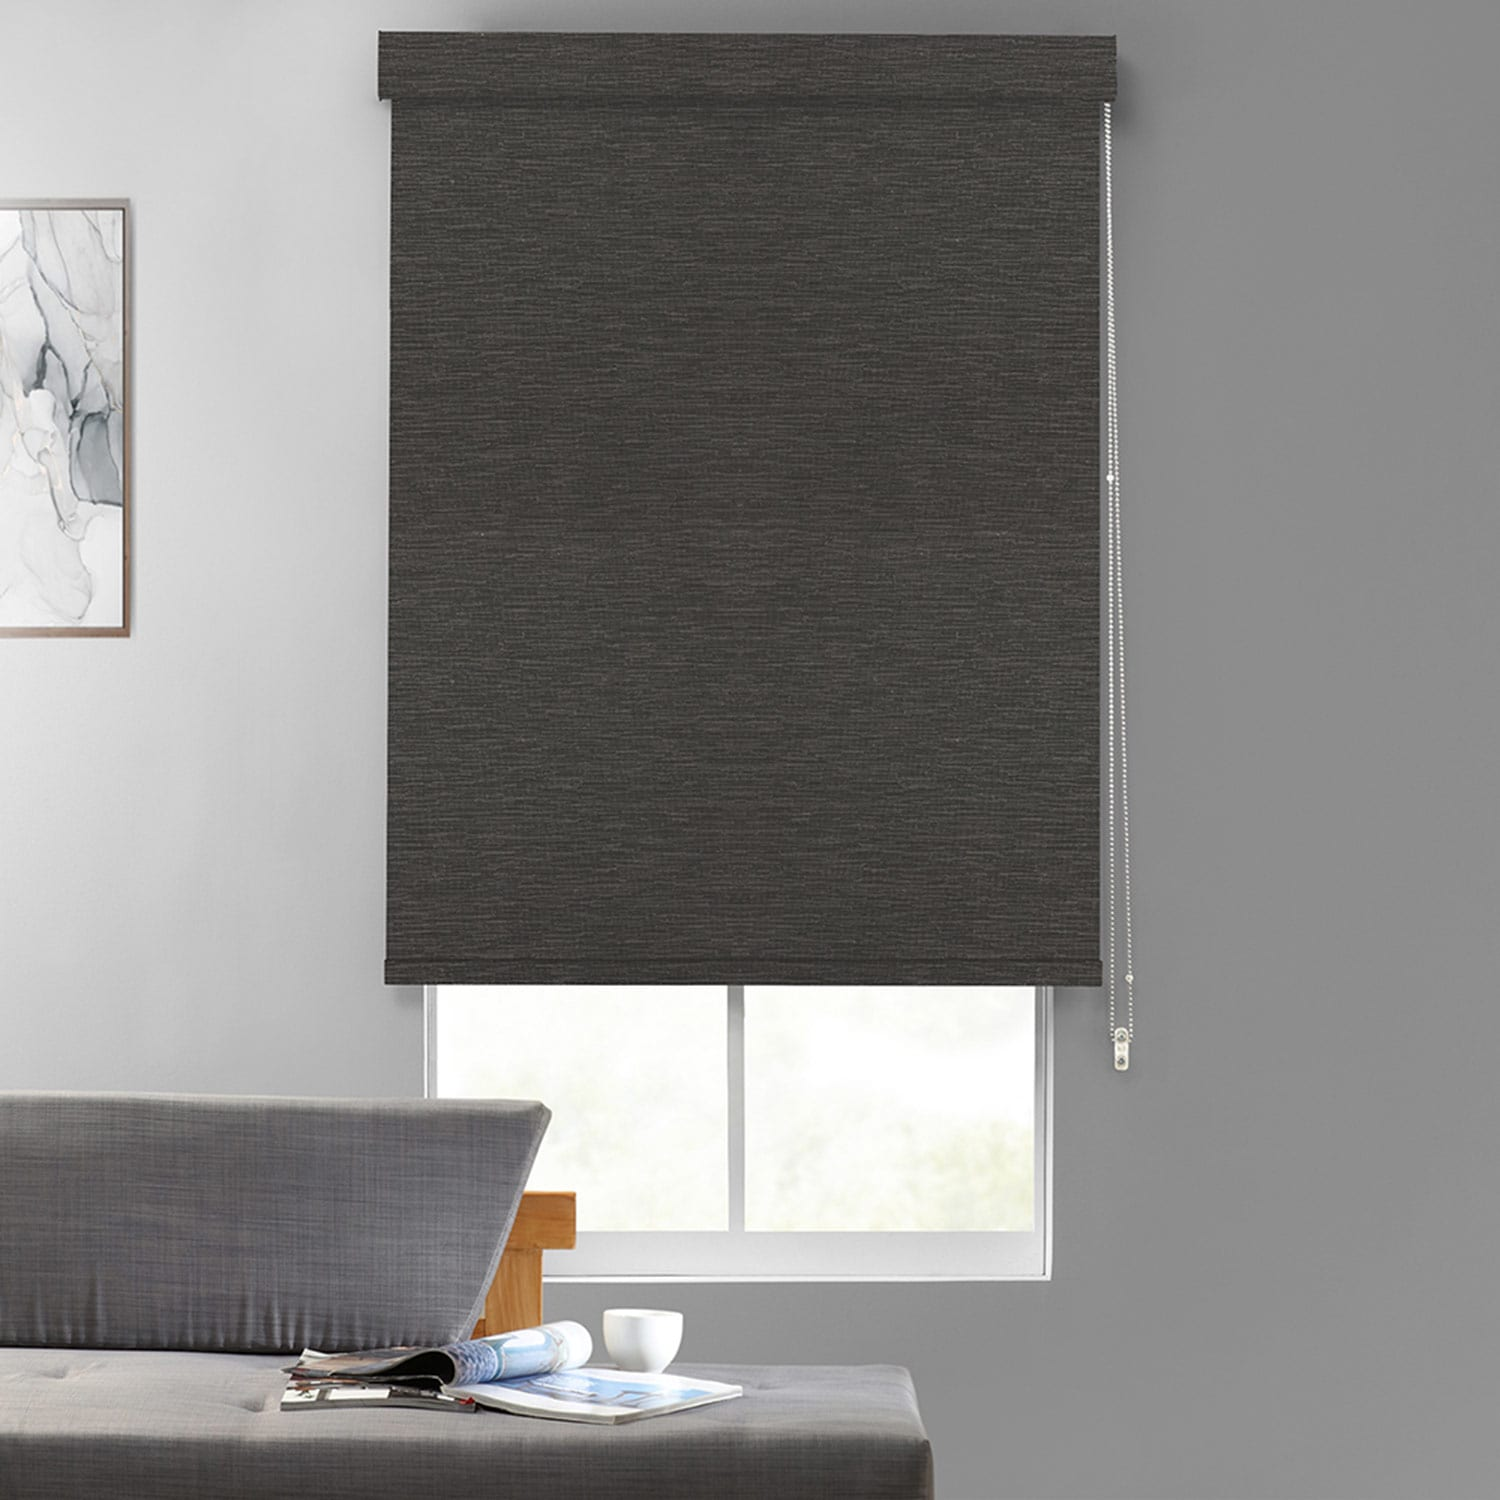 Dobby Textured Blackout Roller Shades